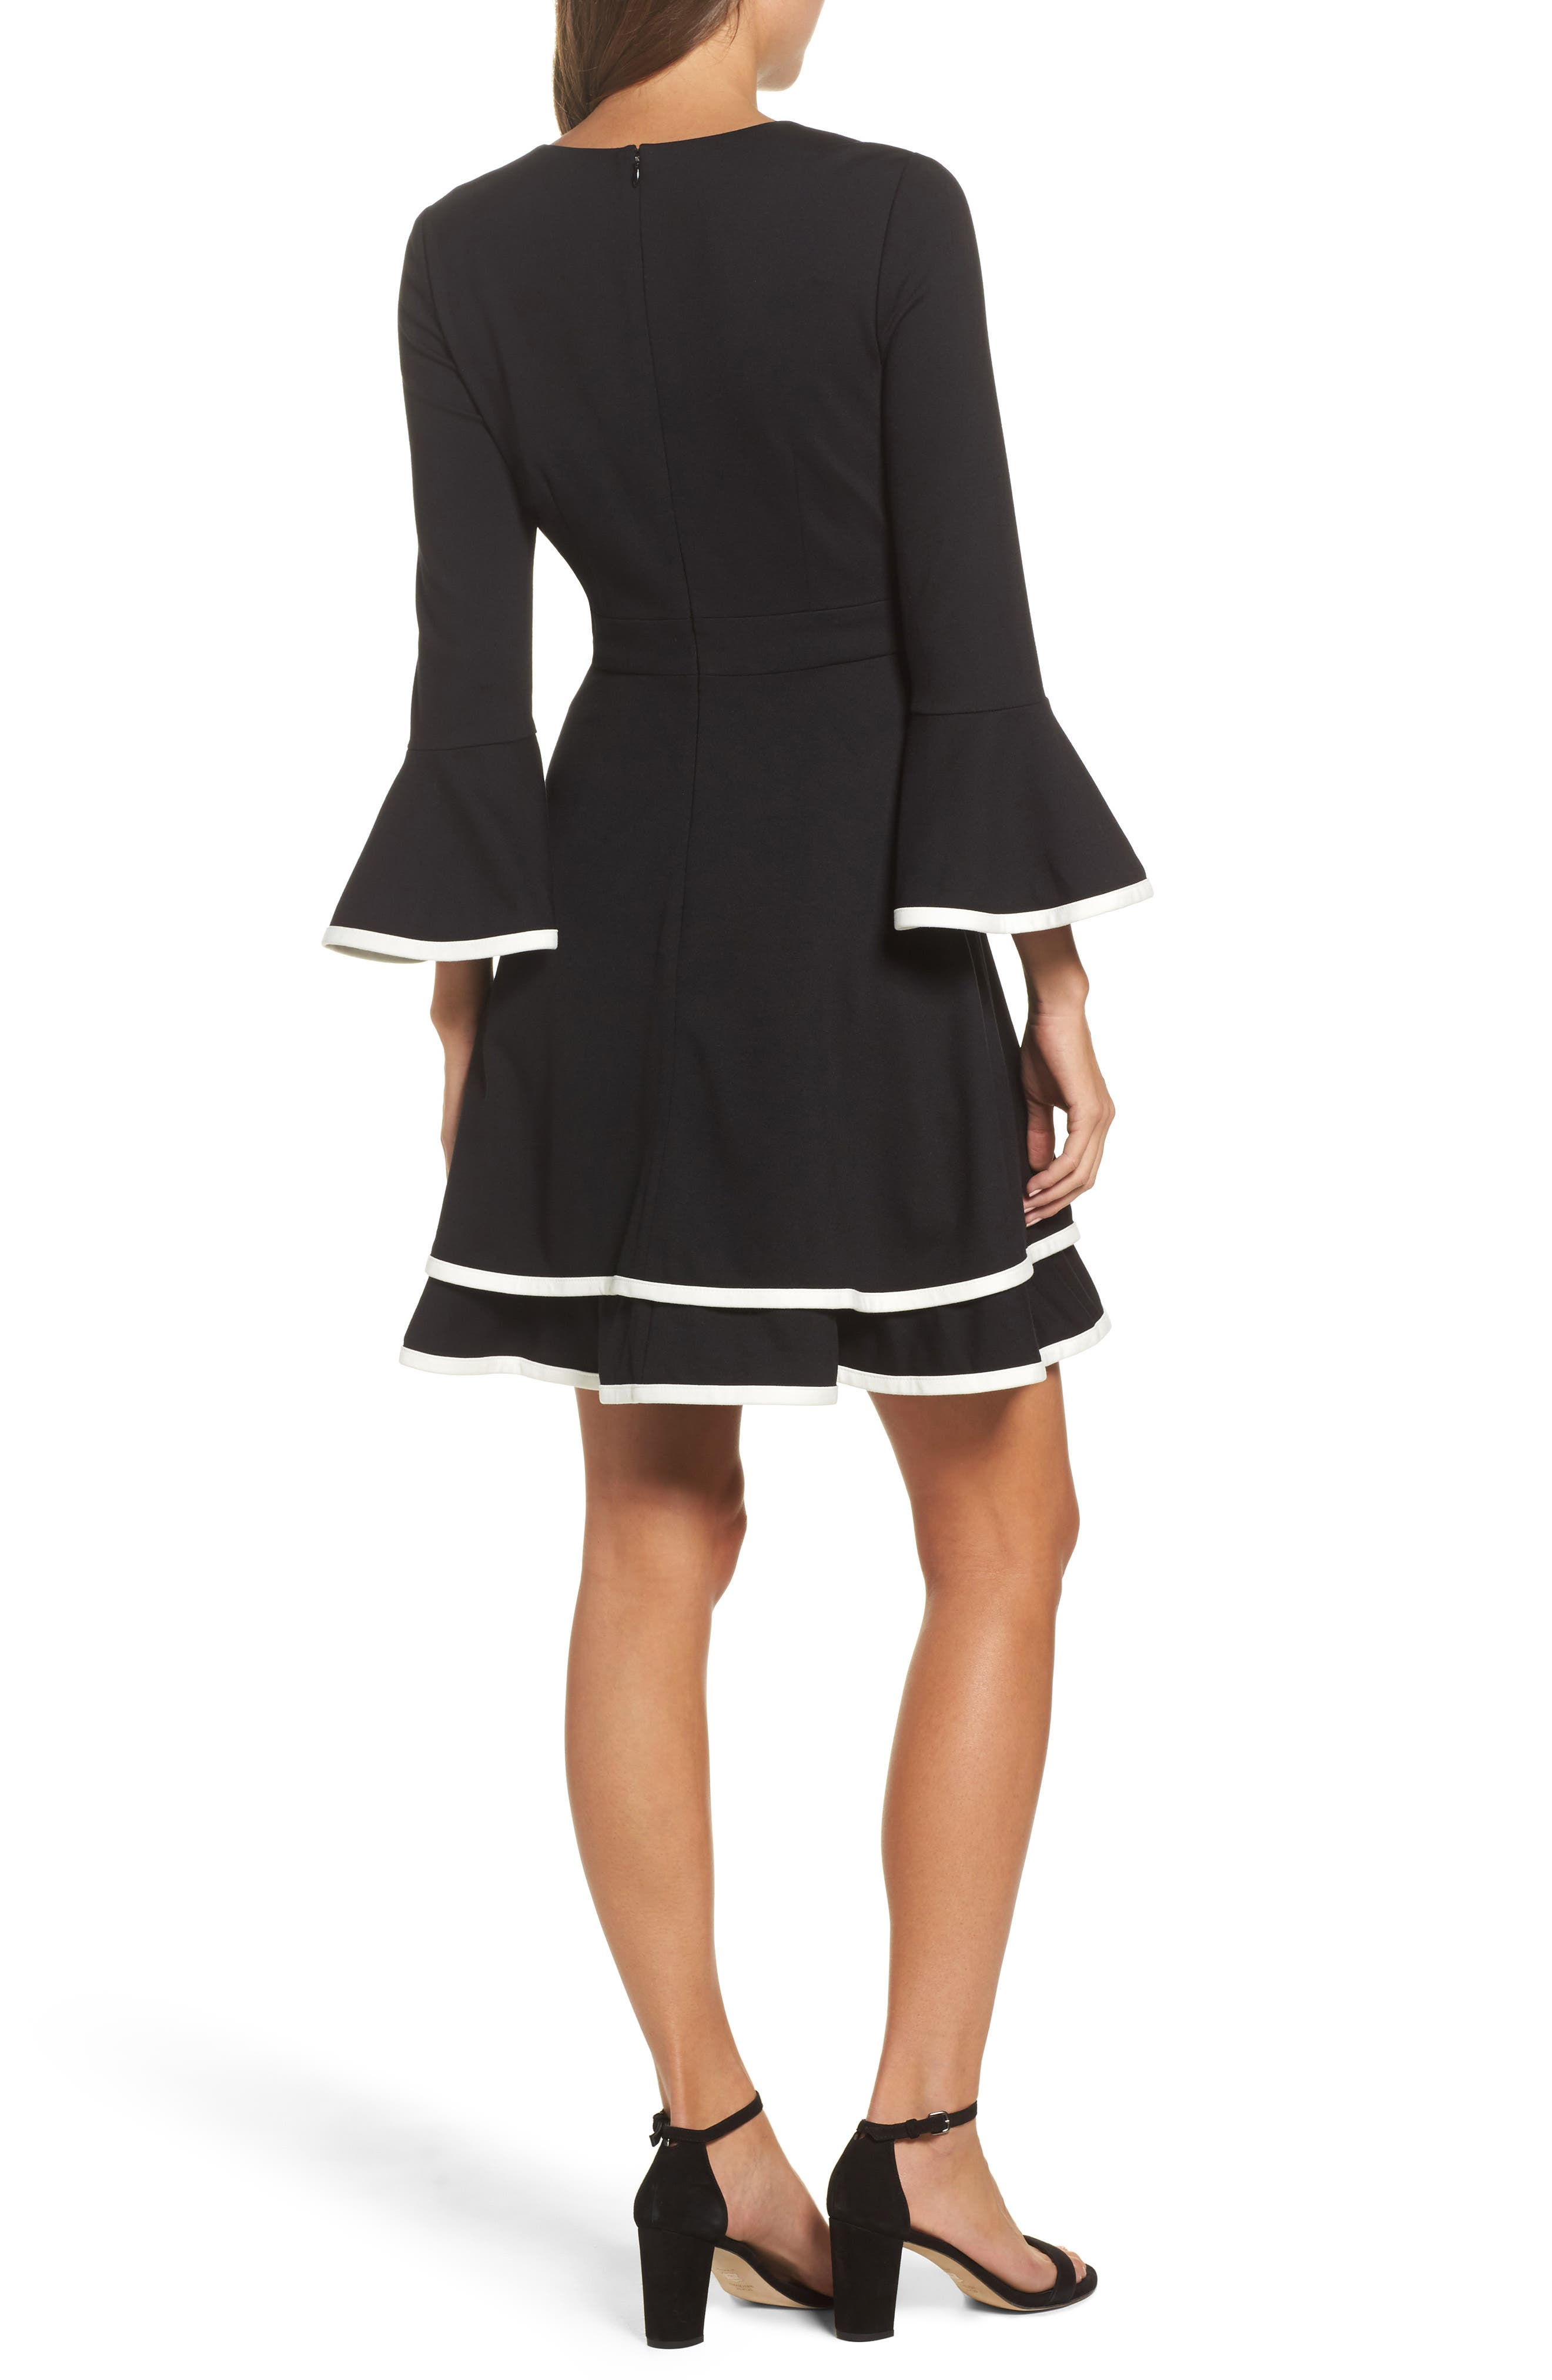 ELIZA J, Bell Sleeve Fit & Flare Dress, Alternate thumbnail 2, color, 006